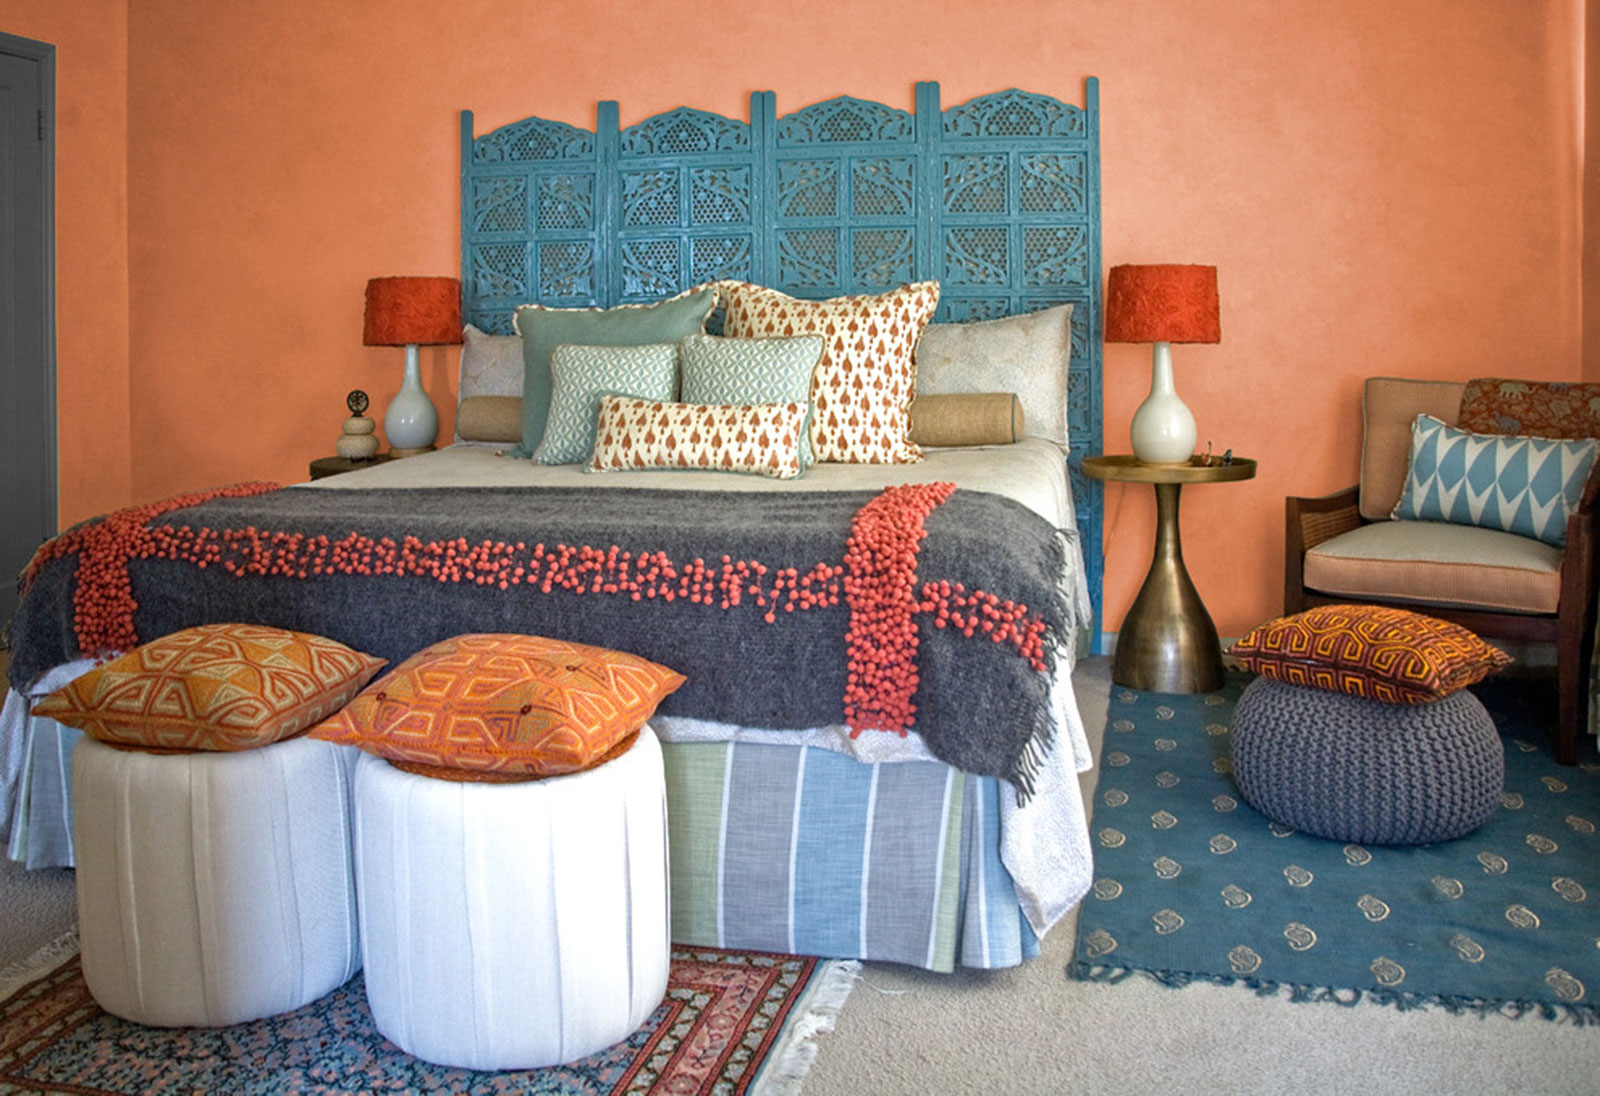 Decorating Your Bedroom With Orange: Ideas & Tips  LoveToKnow